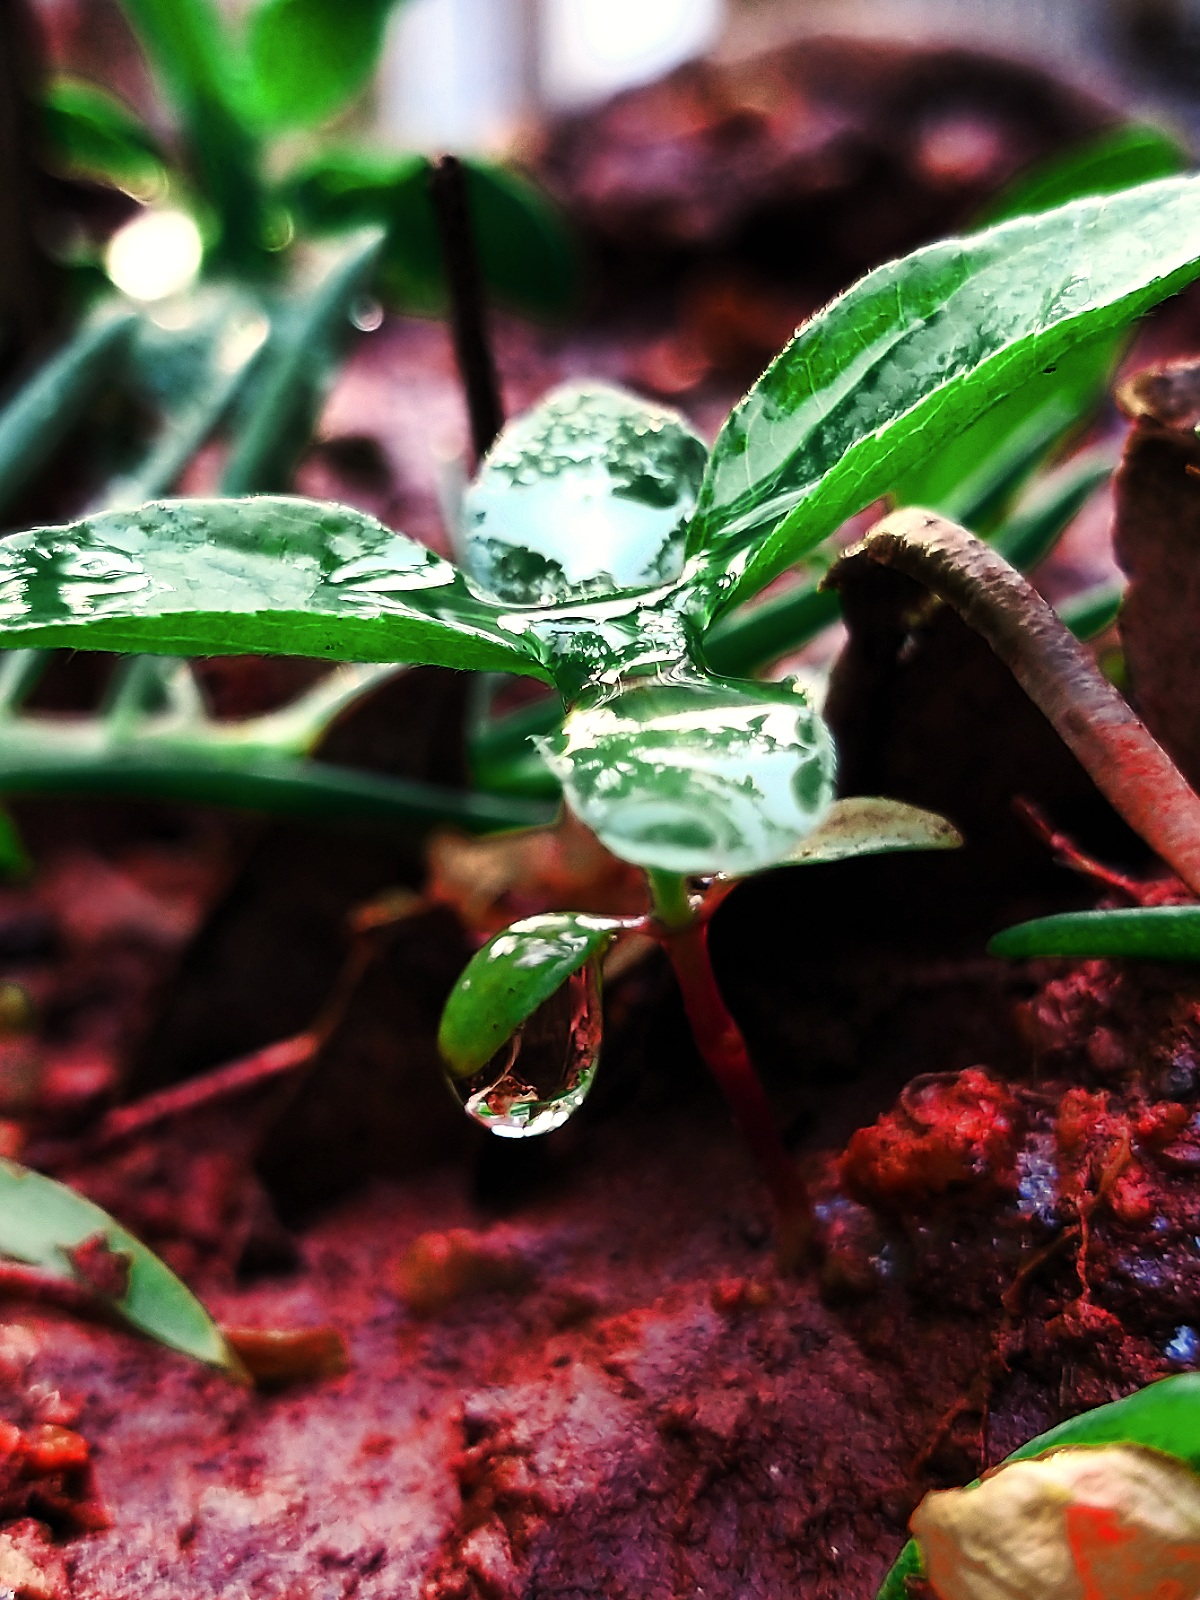 Every drop is important in our life....... you have to enjoy before the drop being evaporated...